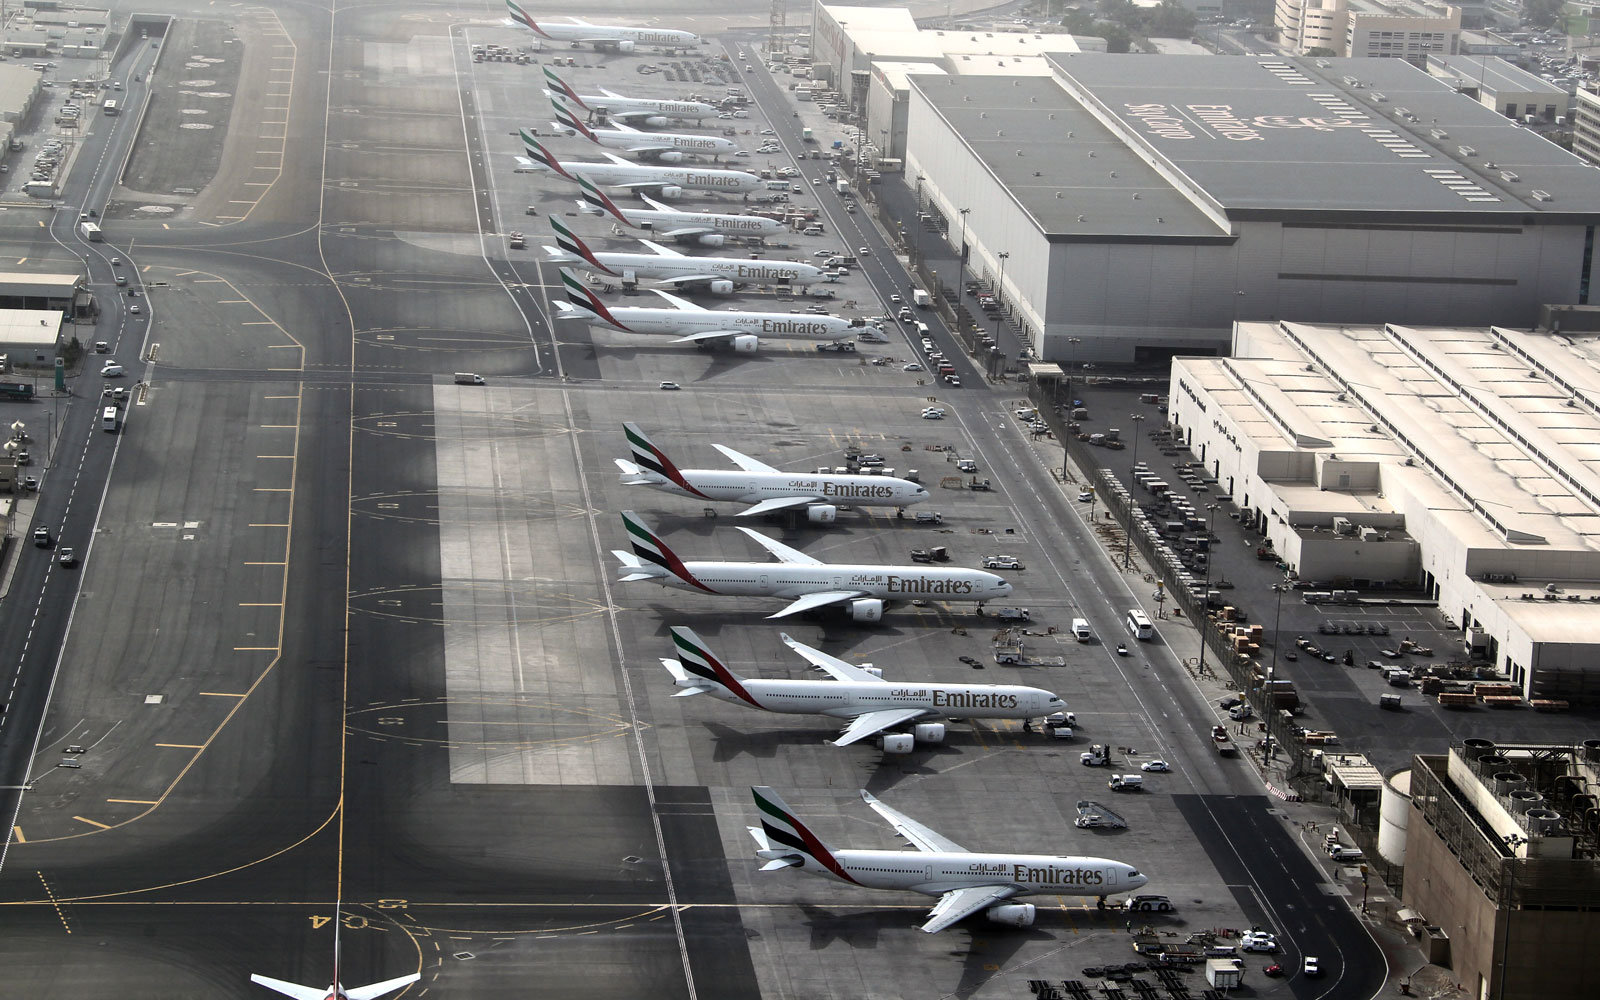 Dubai's airport is fighting back against drones.